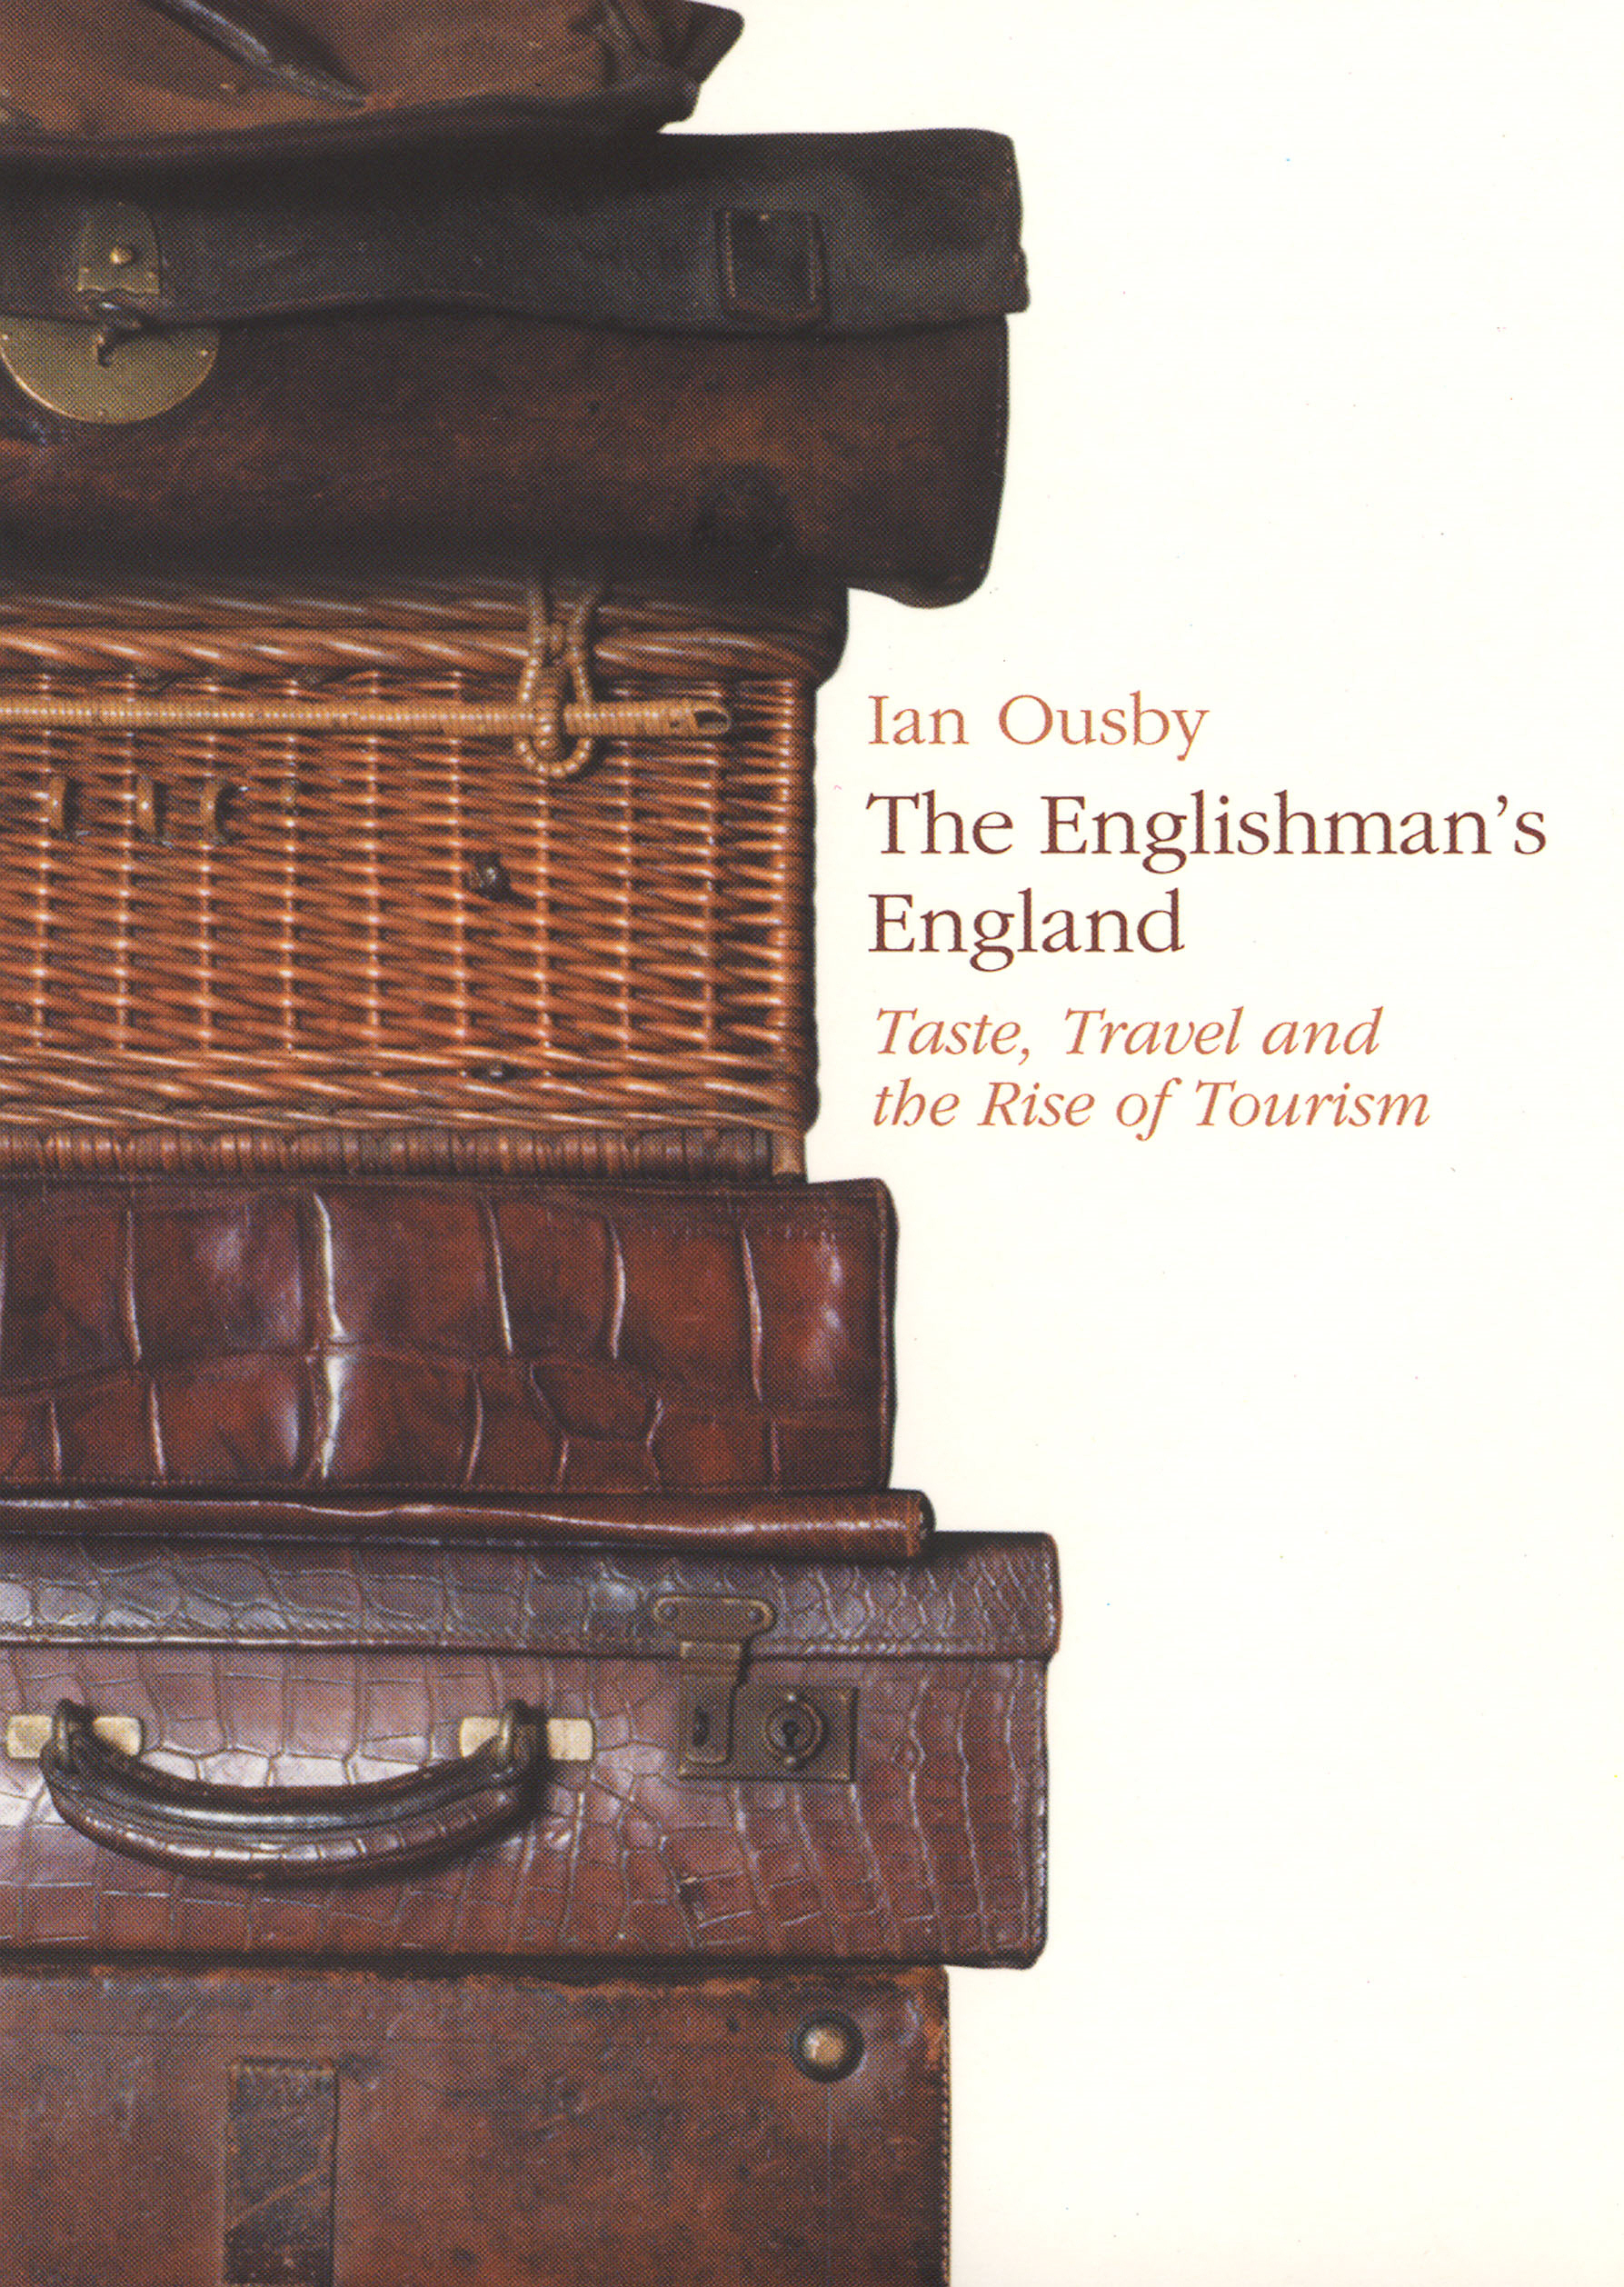 The Englishman's England